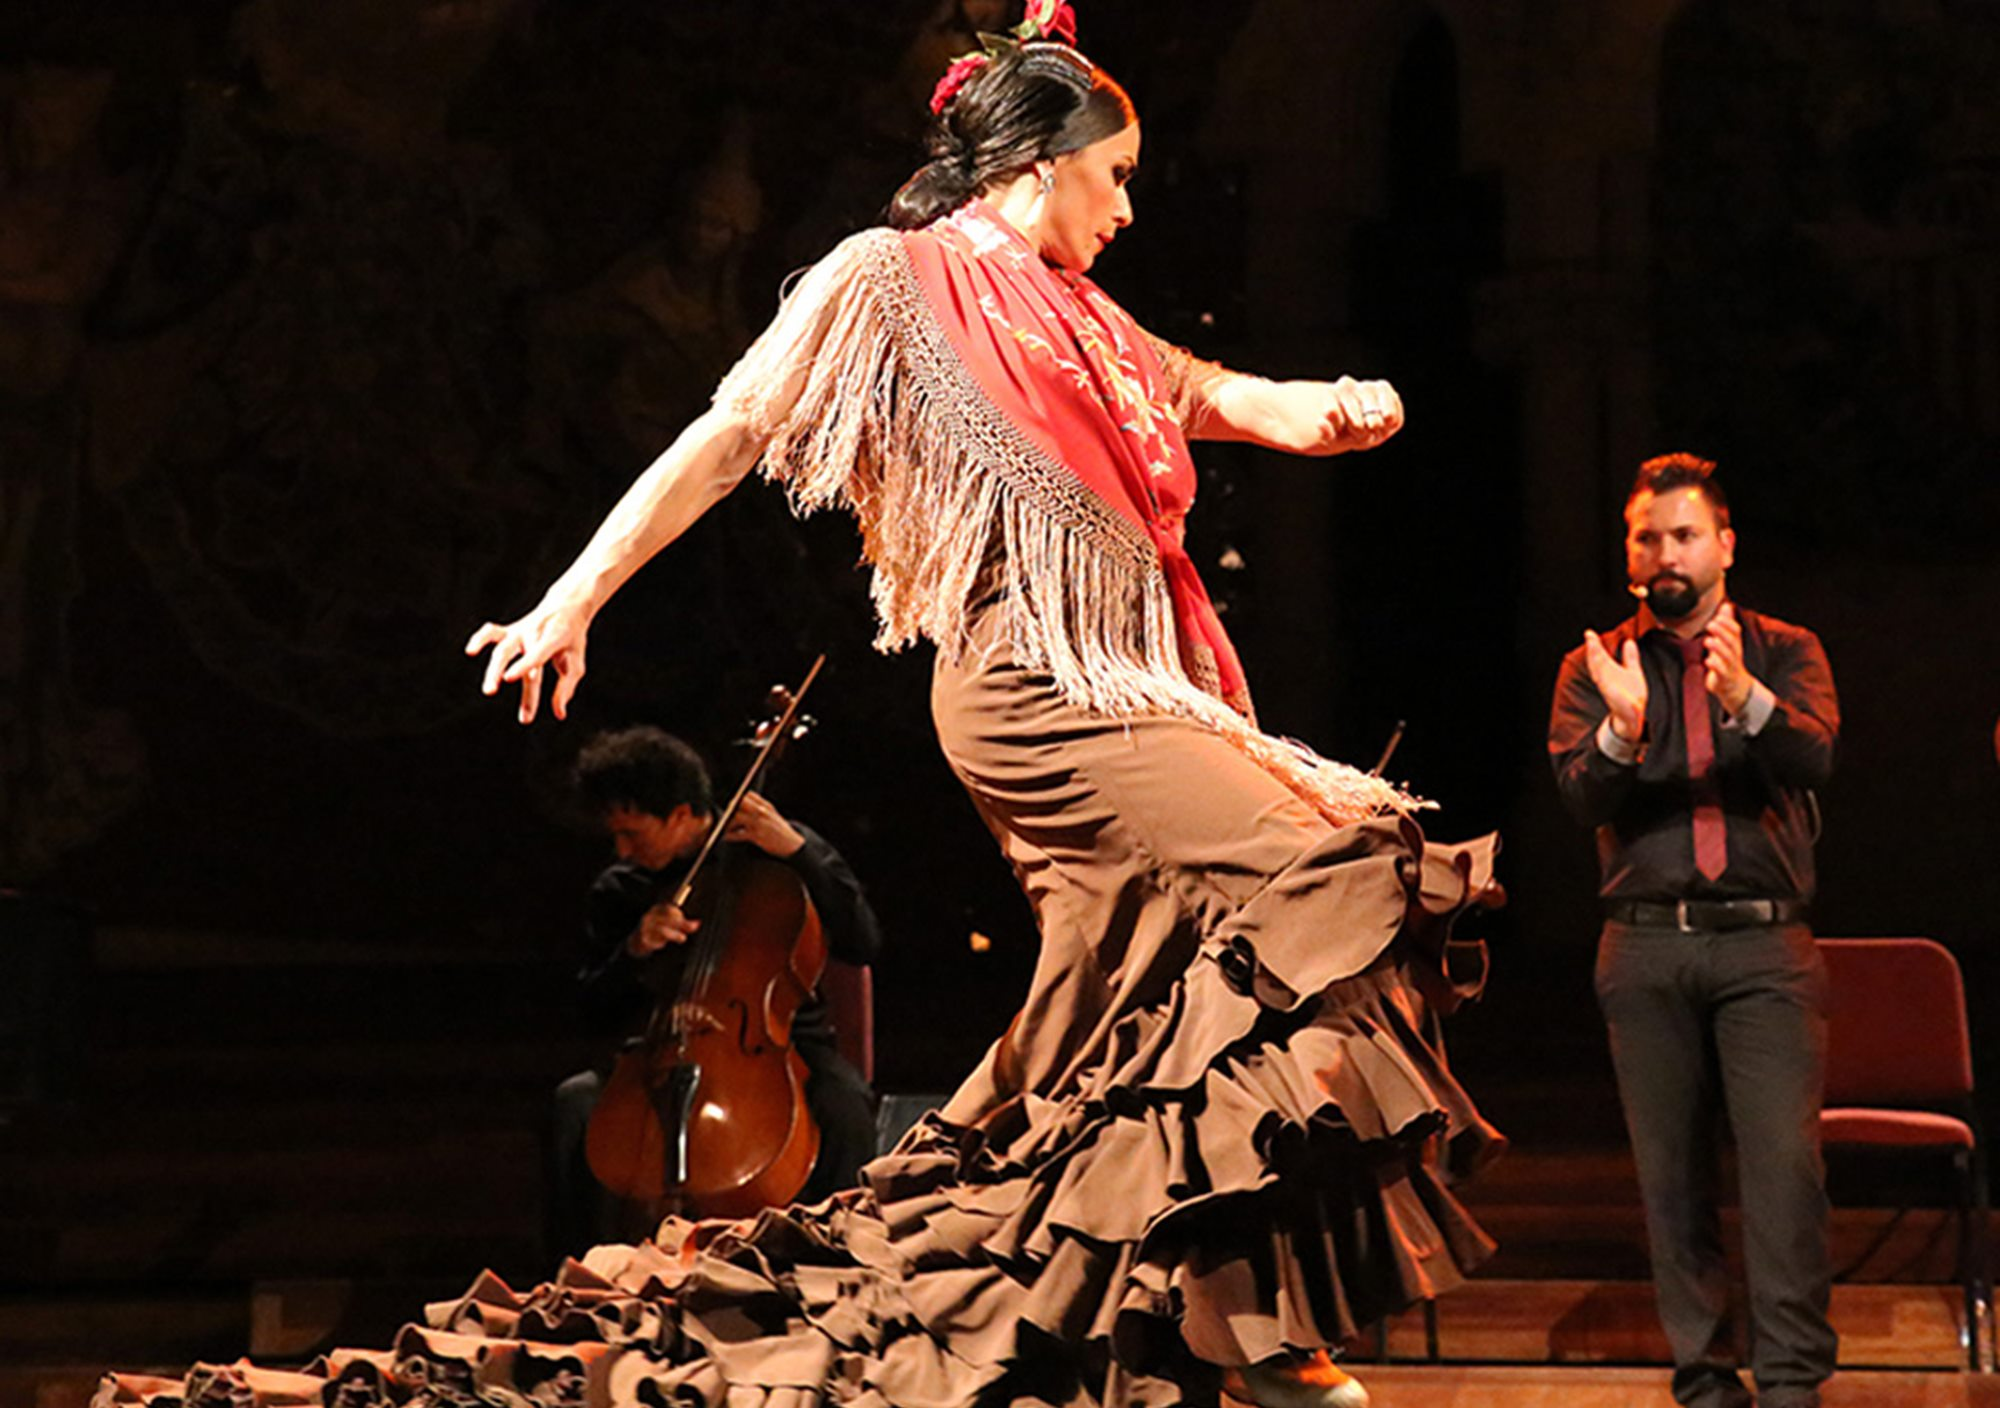 Opera & Flamenco show in Palau de la Música Catalana get buy tickets online visit spectacle